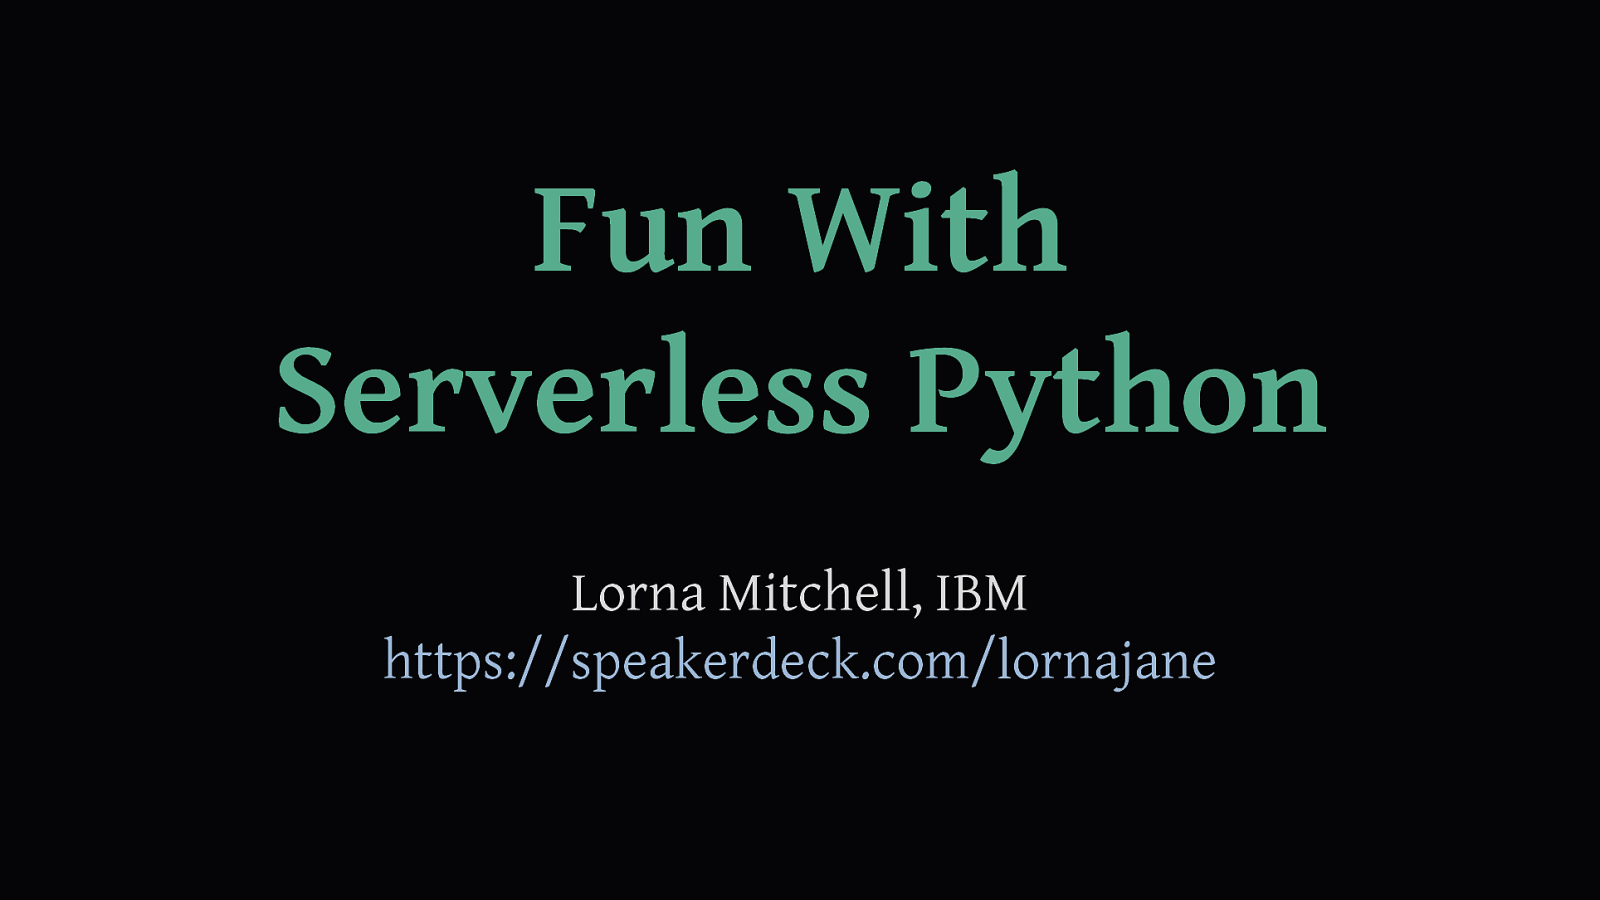 Fun With Serverless Python